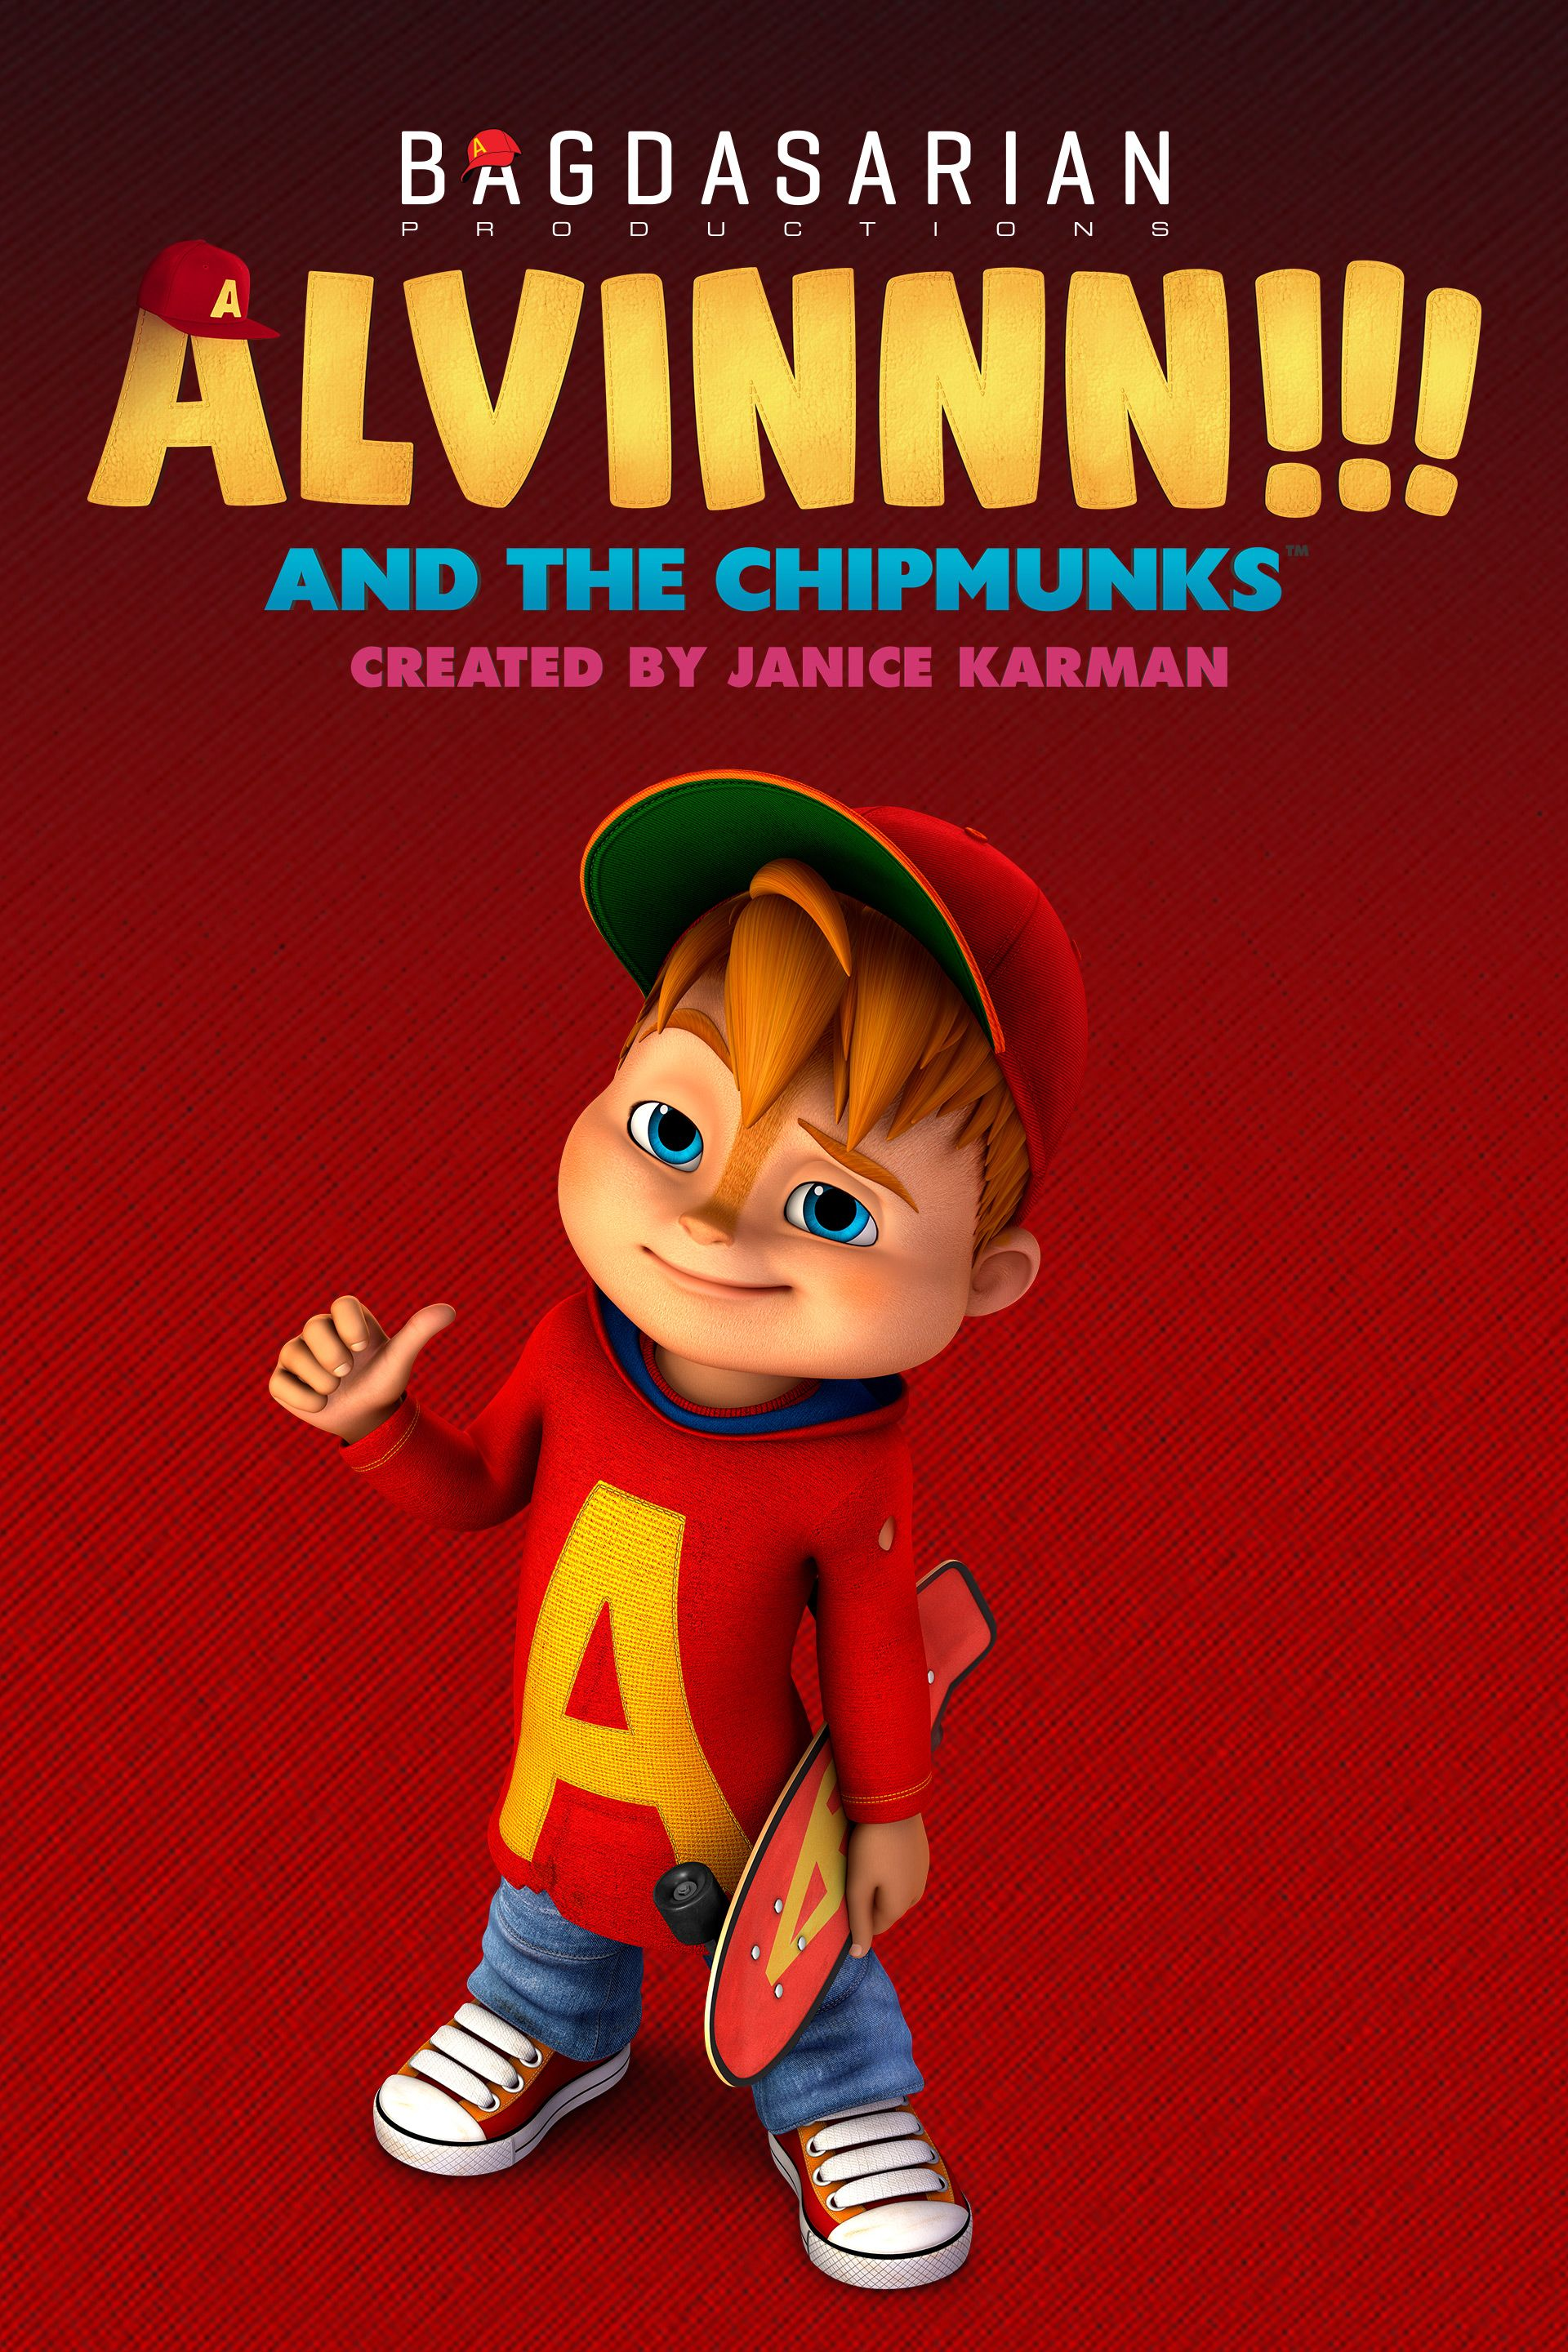 Ride Nickelodeon Full Episodes : nickelodeon, episodes, ALVINNN!!!, Chipmunks, Official, Series, Nickelodeon